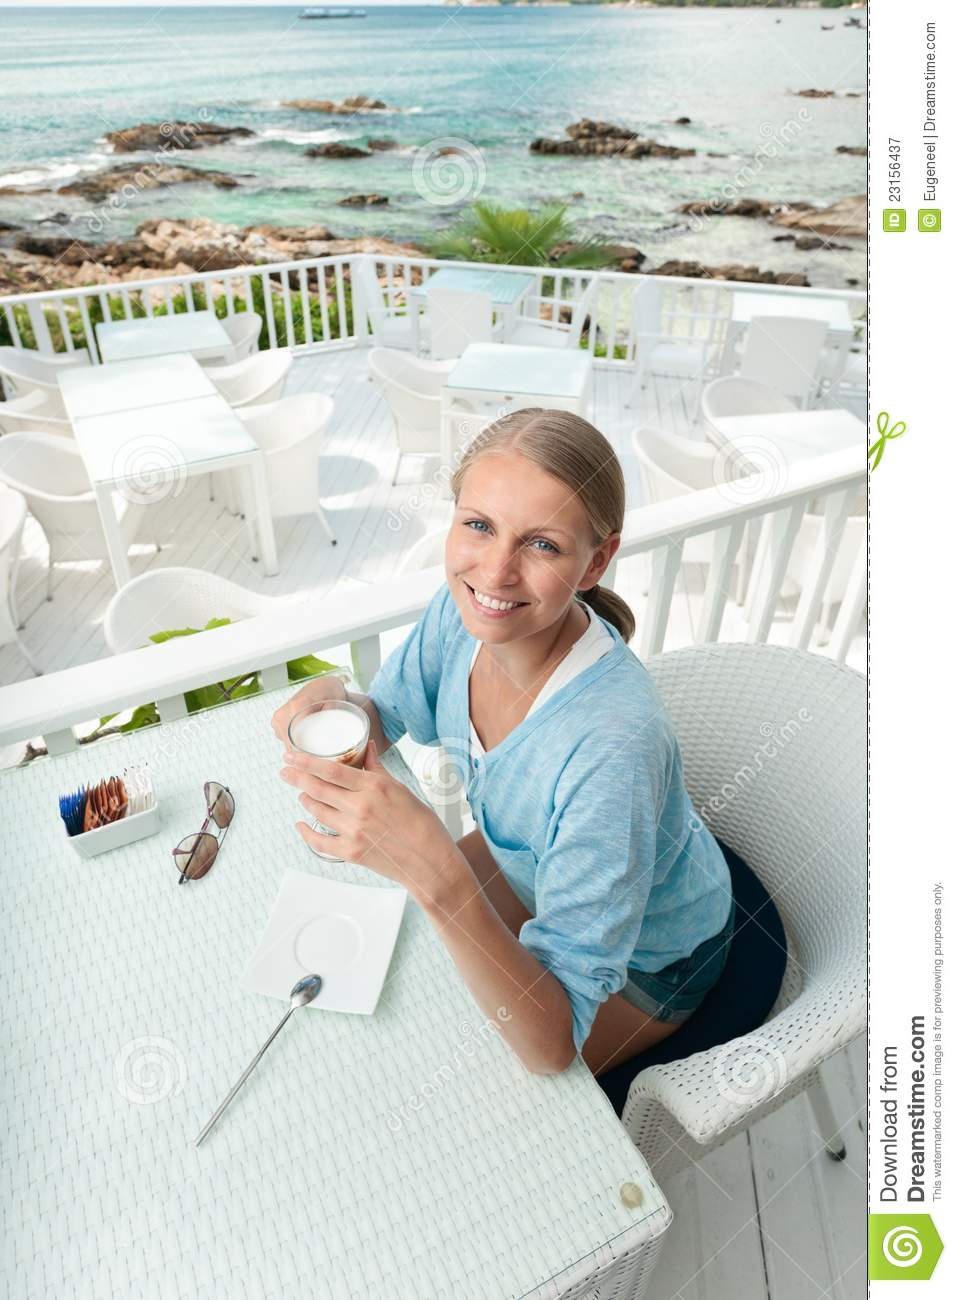 ocean view milf women Download ocean view stock photos affordable and search from millions of royalty free images, photos and vectors.